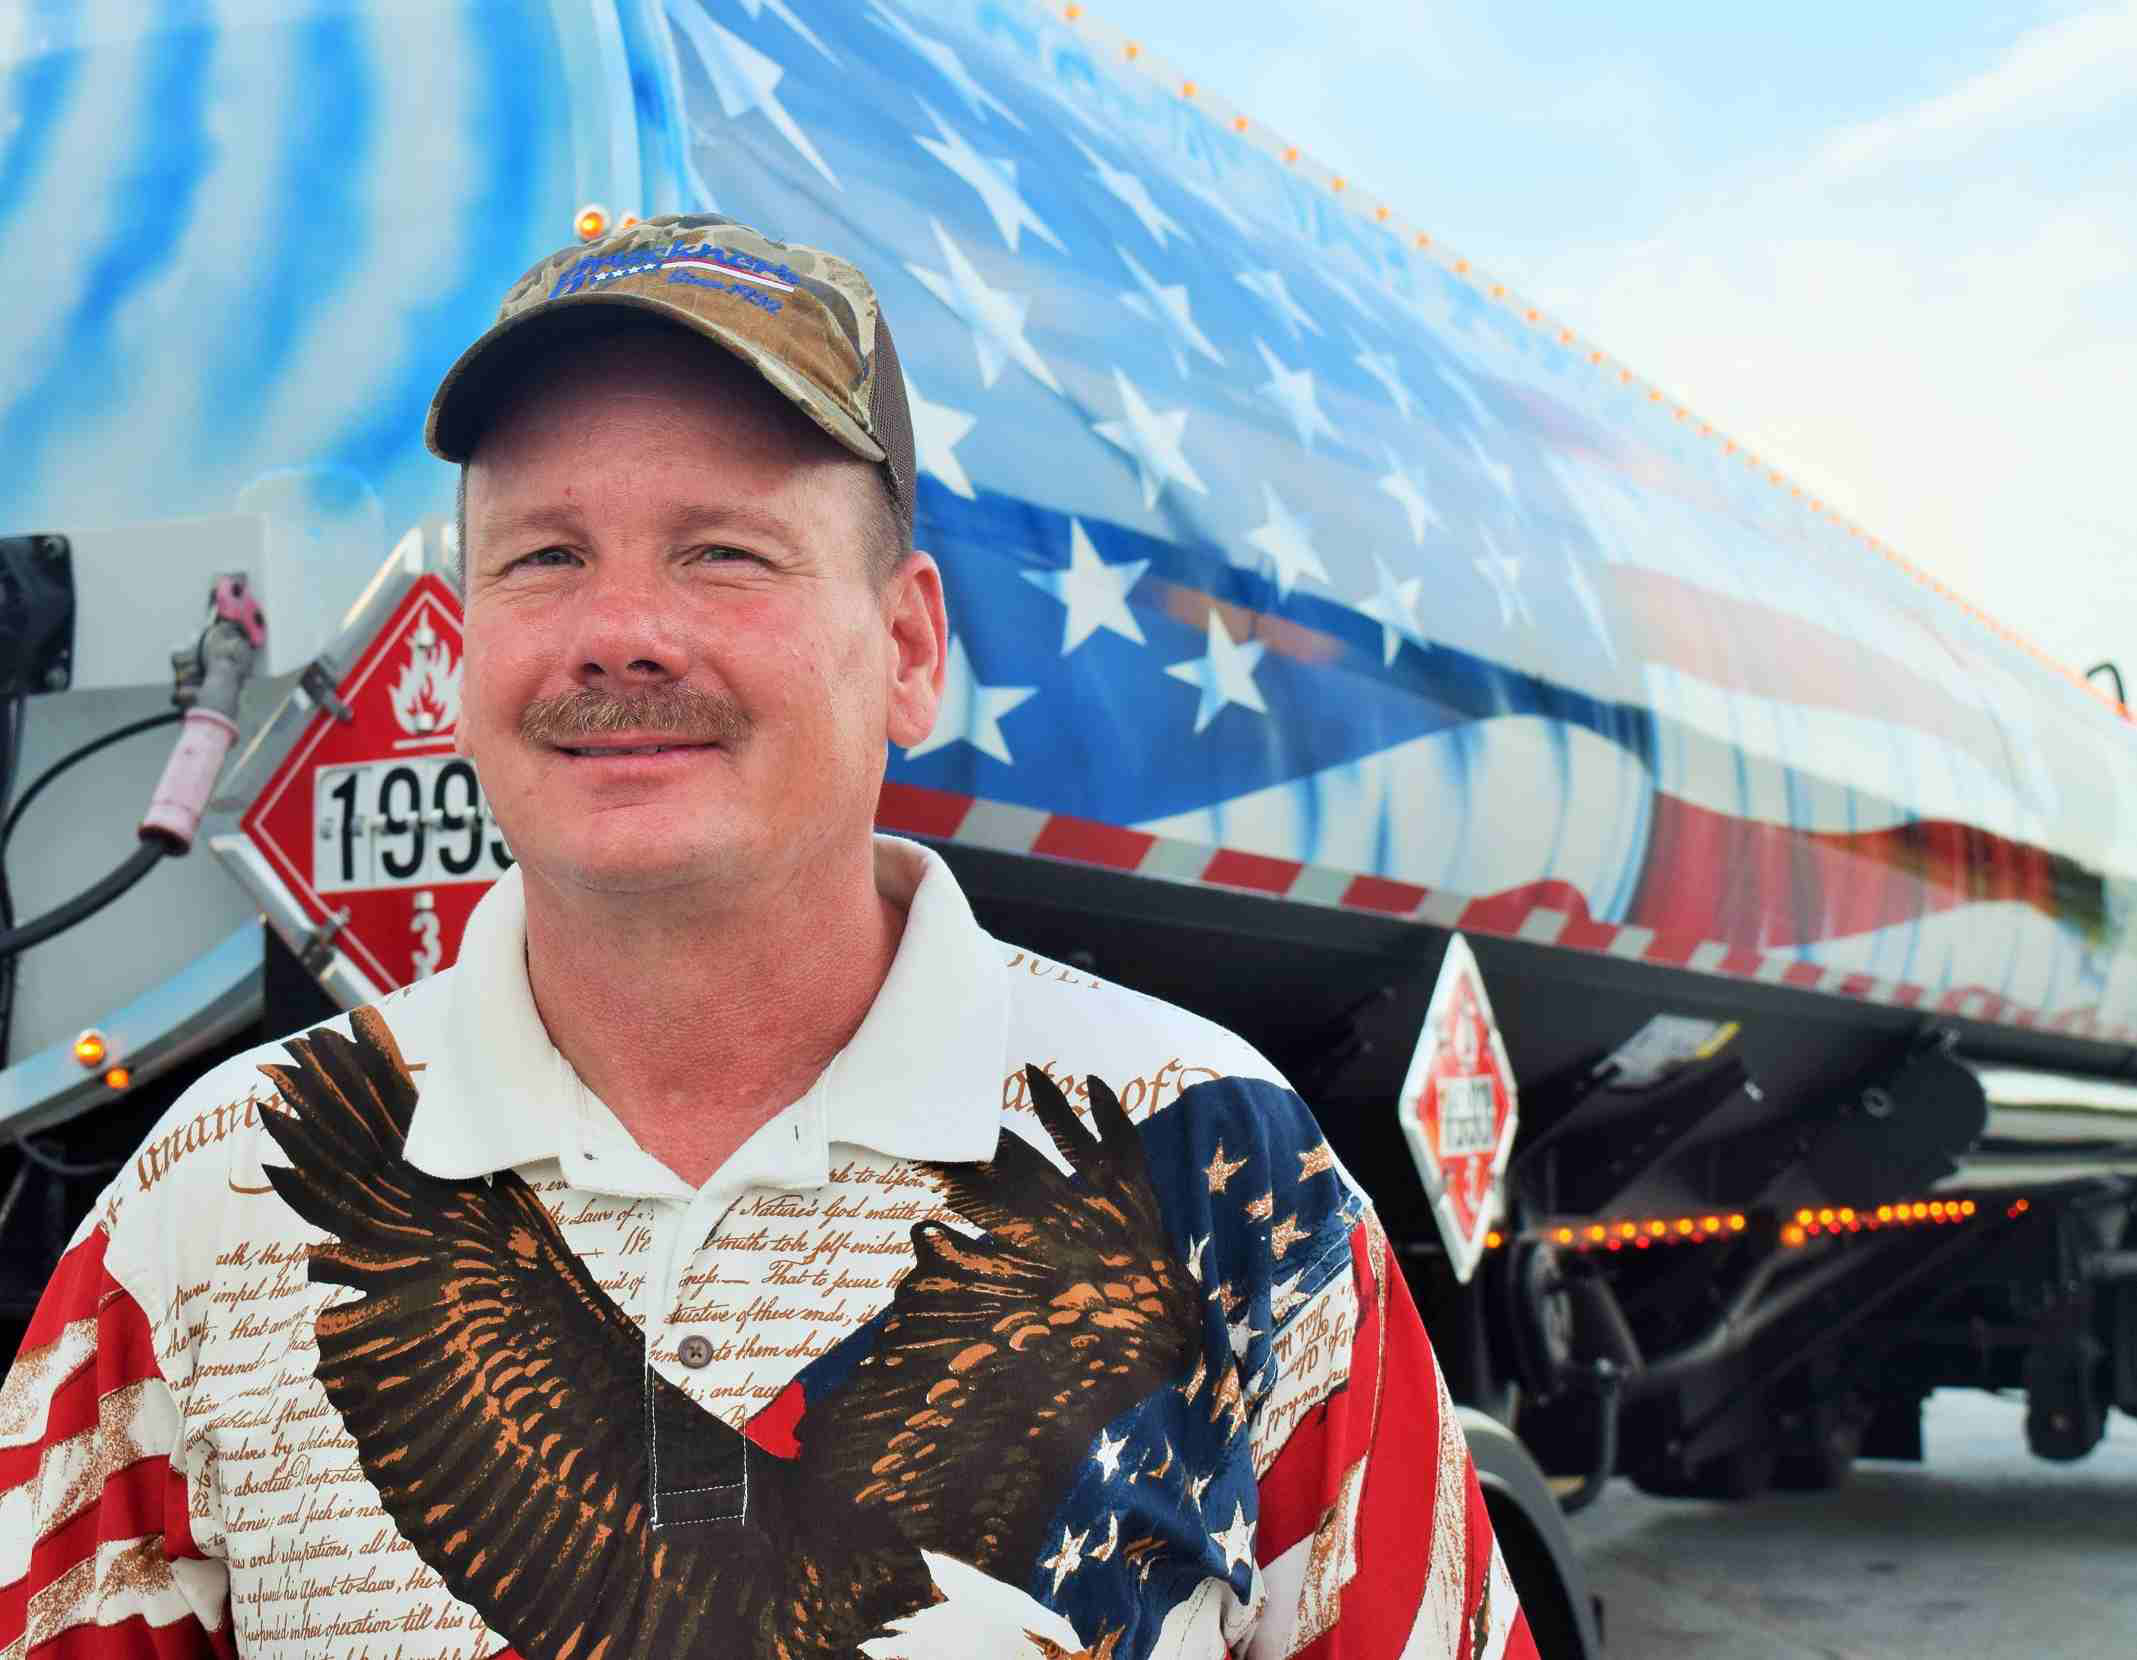 Stunning New Mexico military tribute tanker from owner-operator Grant Maxey